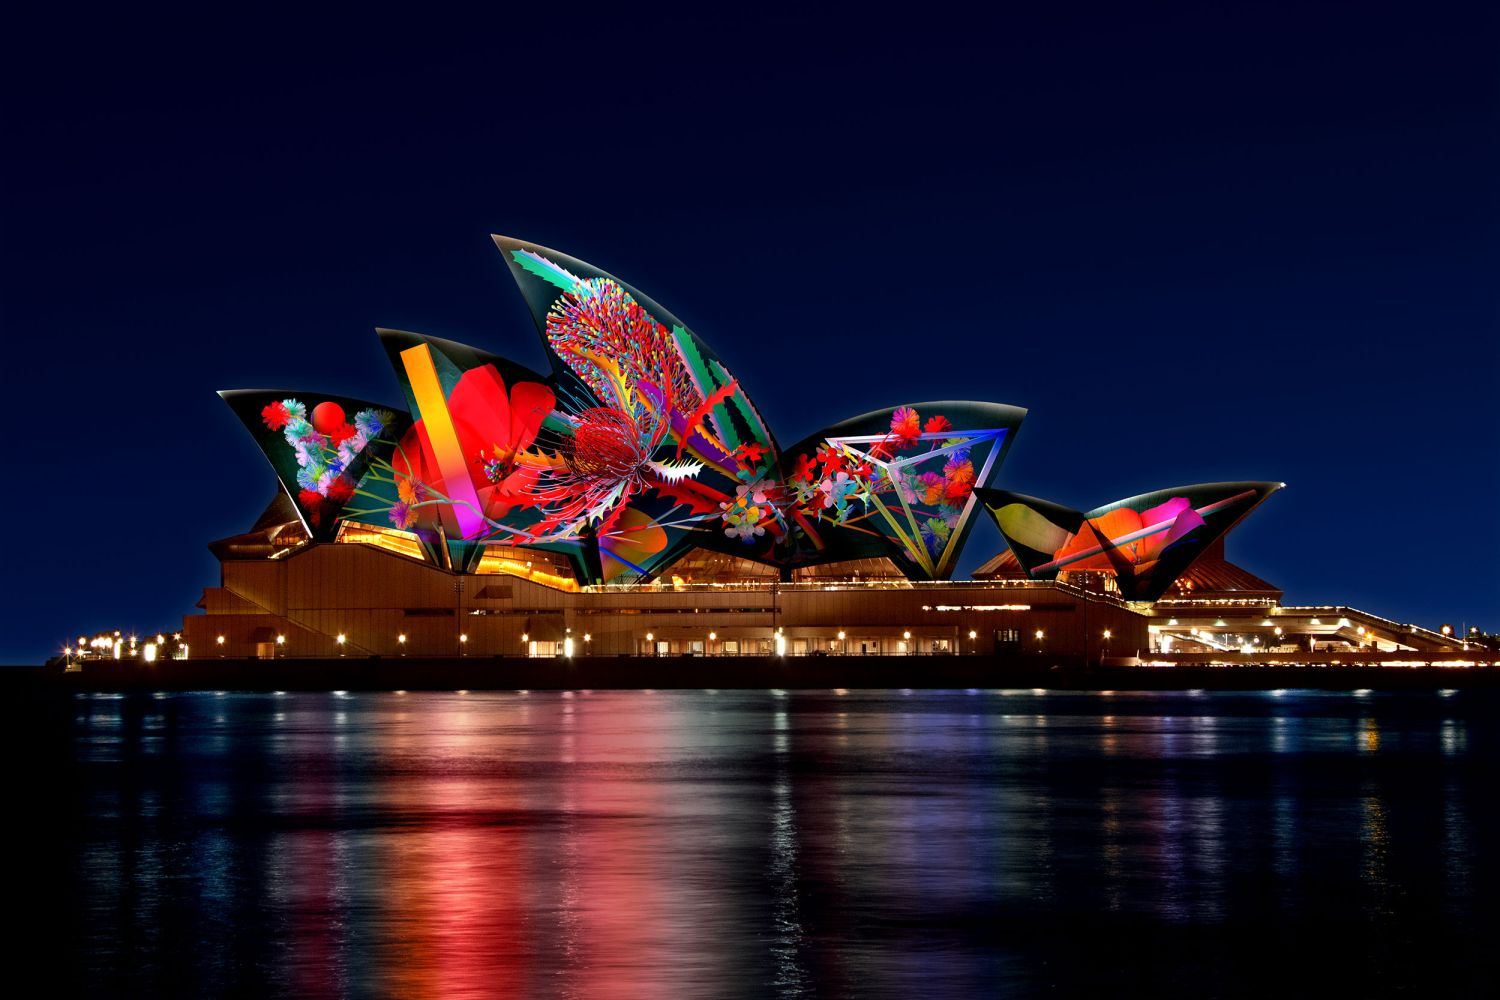 VIVID SYDNEY - LIGHT, MUSIC AND IDEAS